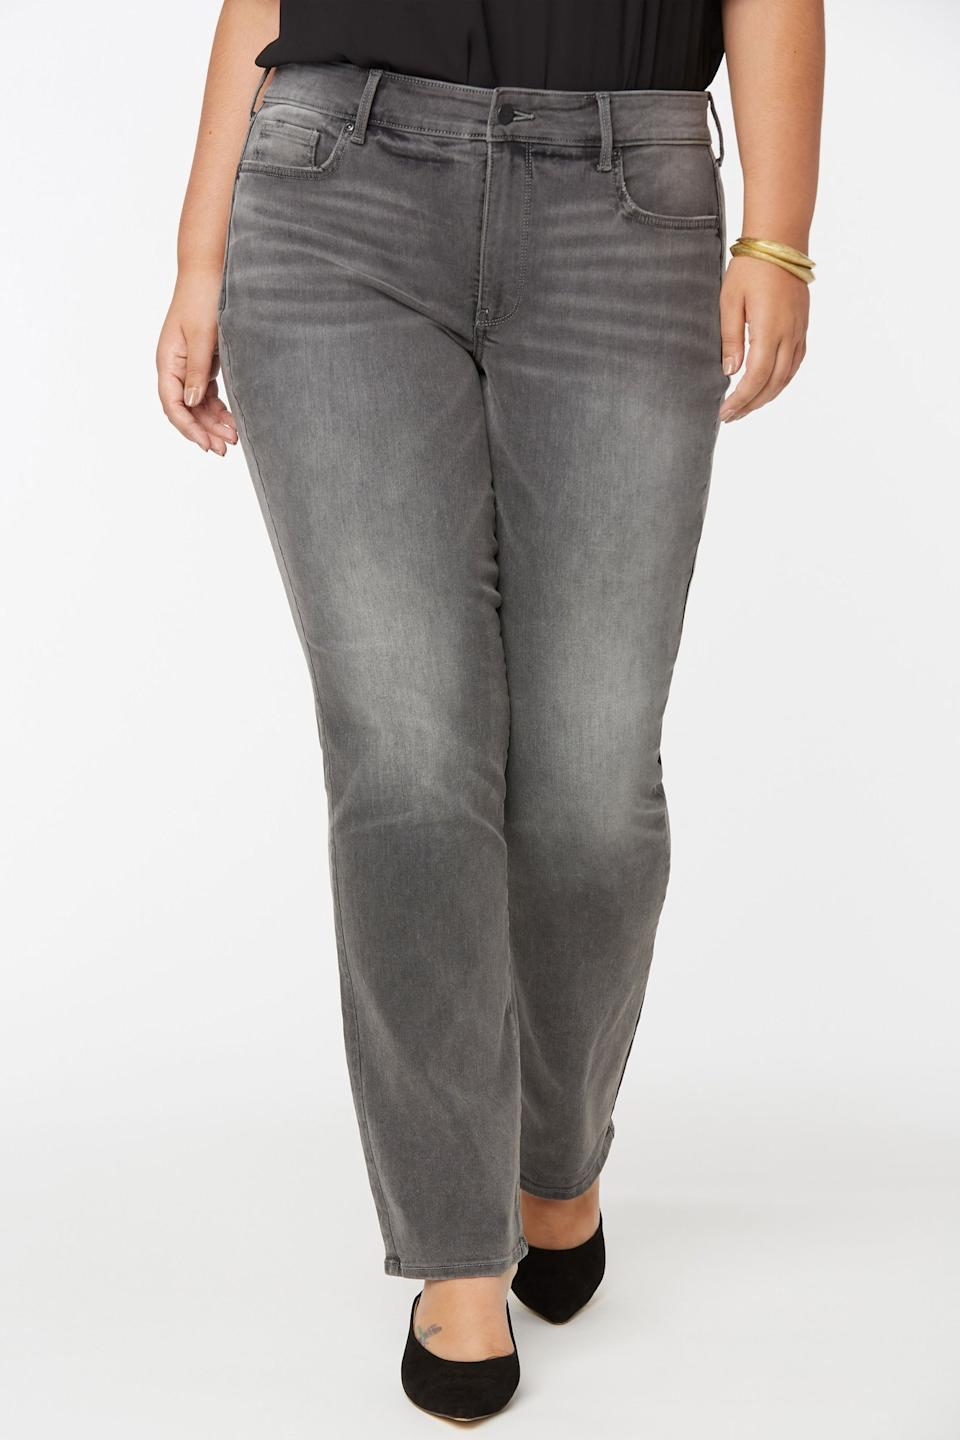 Marilyn Straight Jeans In Plus Size. Image via NYDJ.